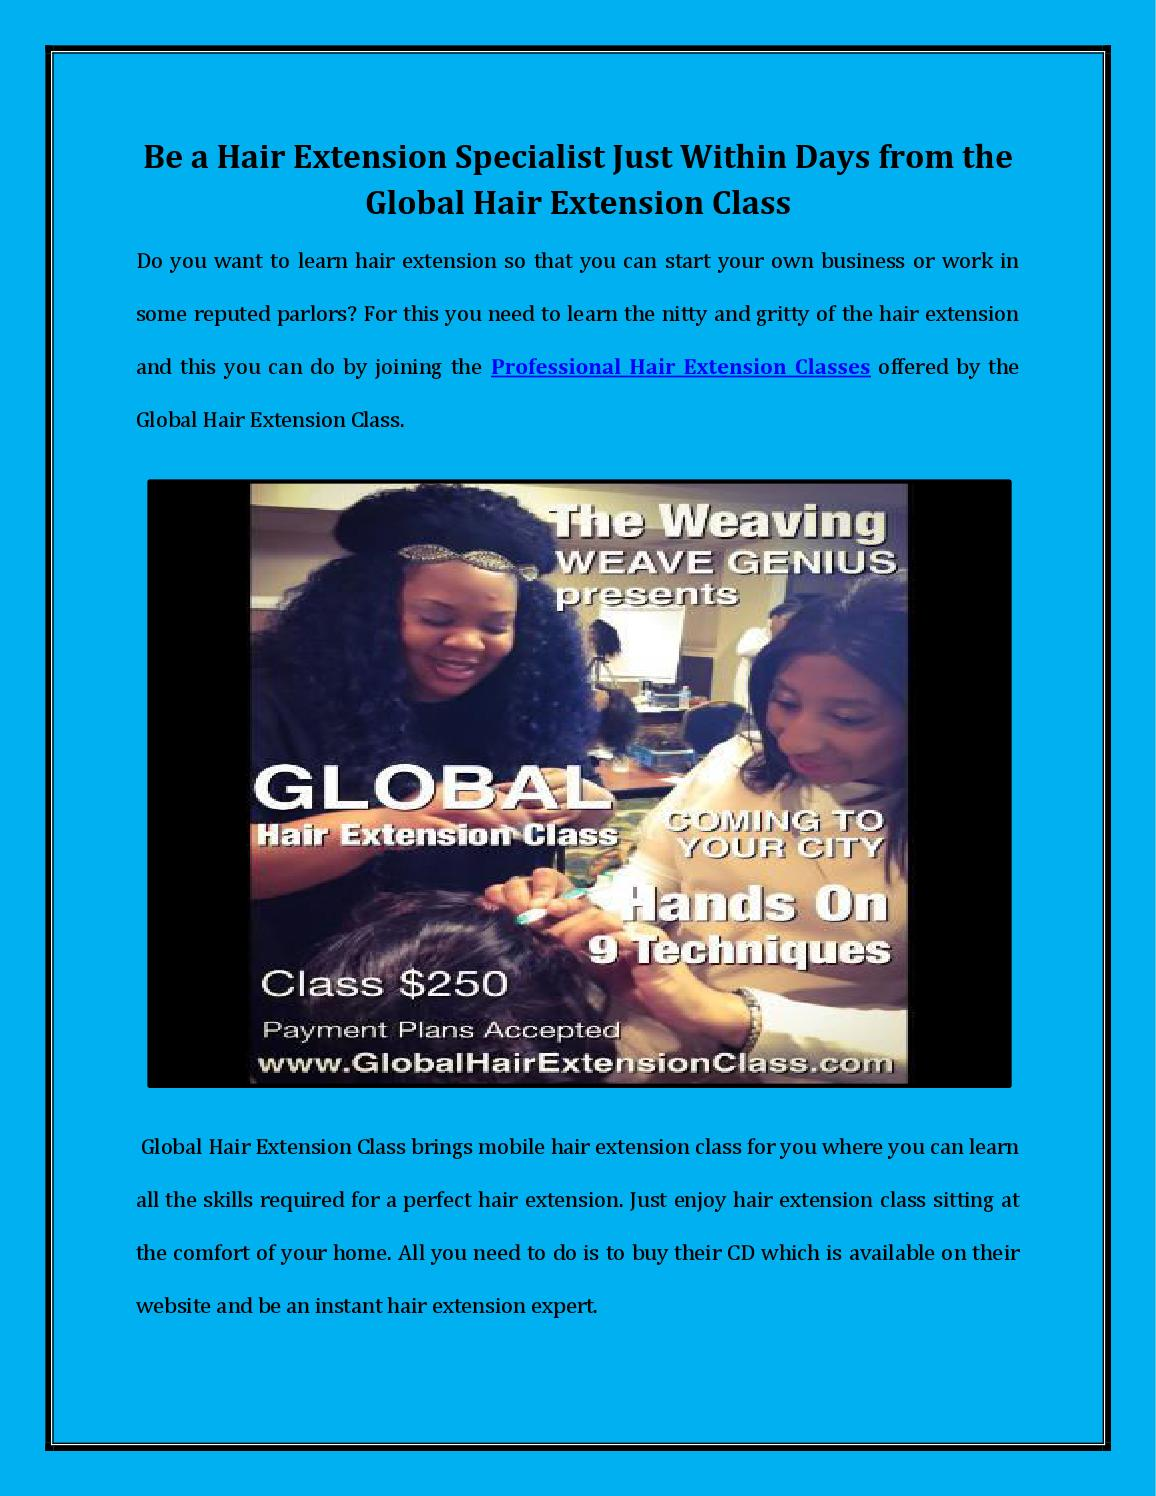 Be A Hair Extension Specialist Just Within Days From The Global Hair